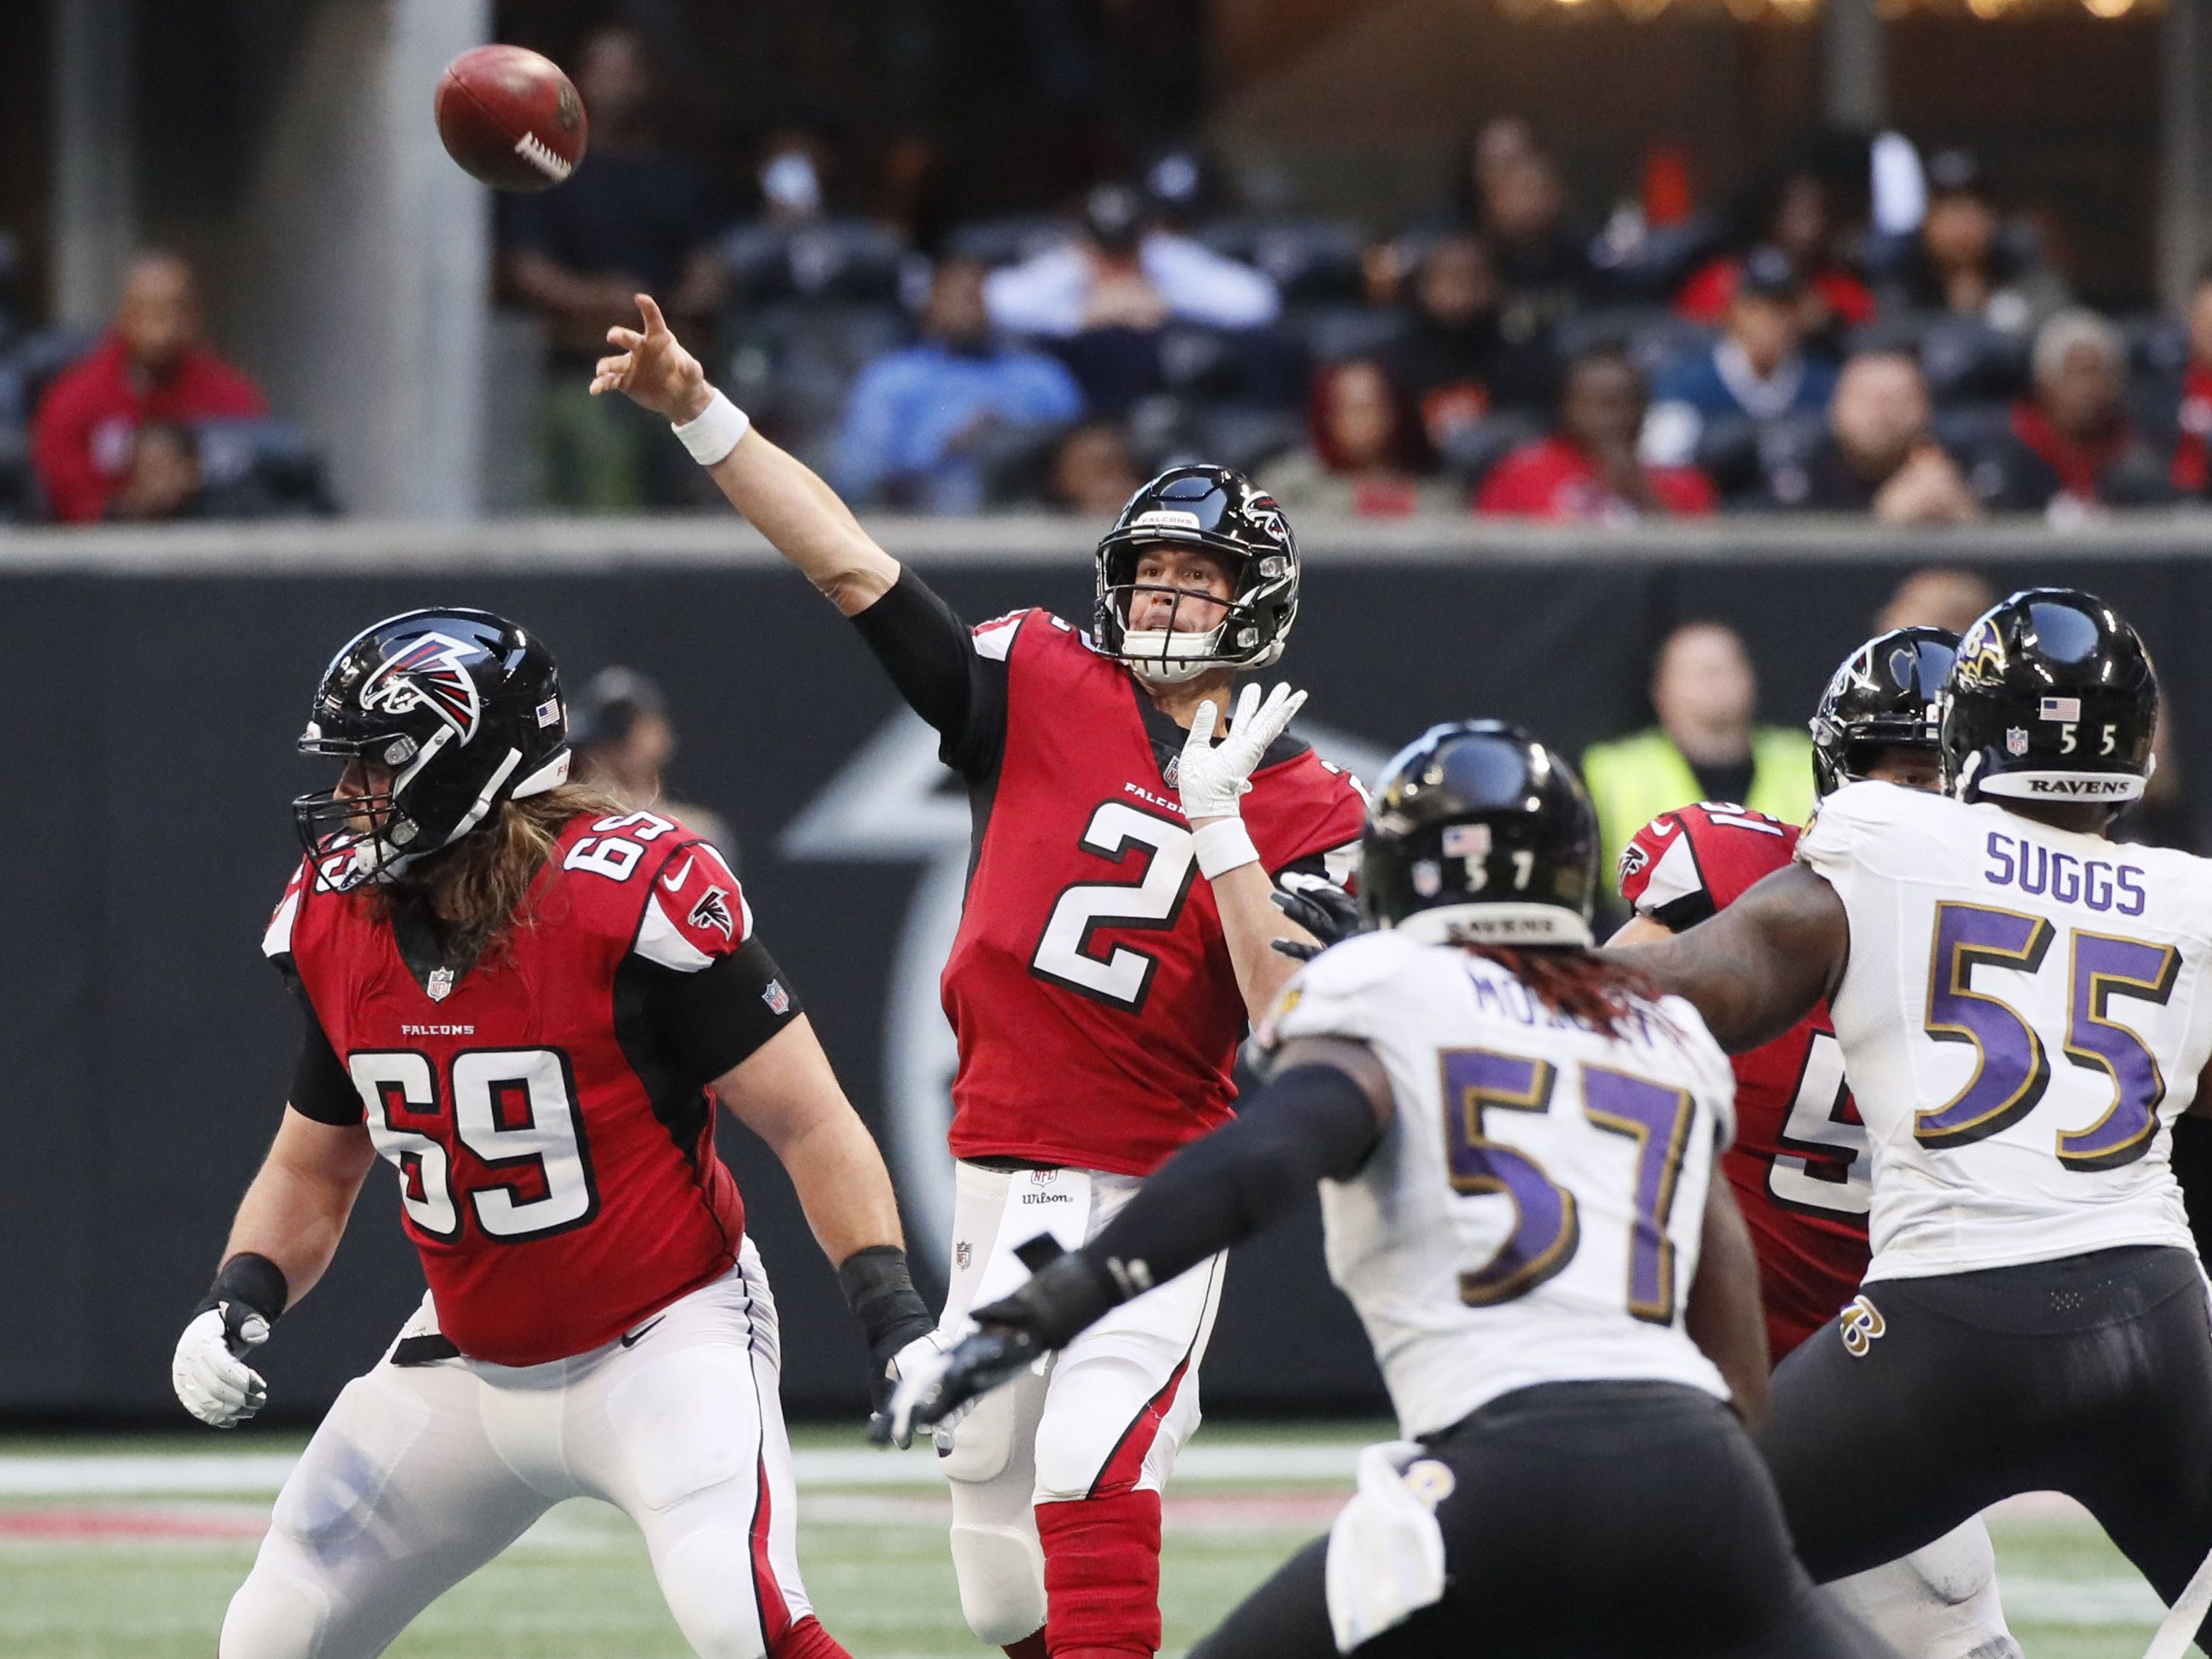 22. Falcons (4-8) | Last game: Lost to the Ravens, 26-16 | Previous ranking: 21 | The buzz: Matt Ryan has an outside chance at throwing for 5,000 yards this year.